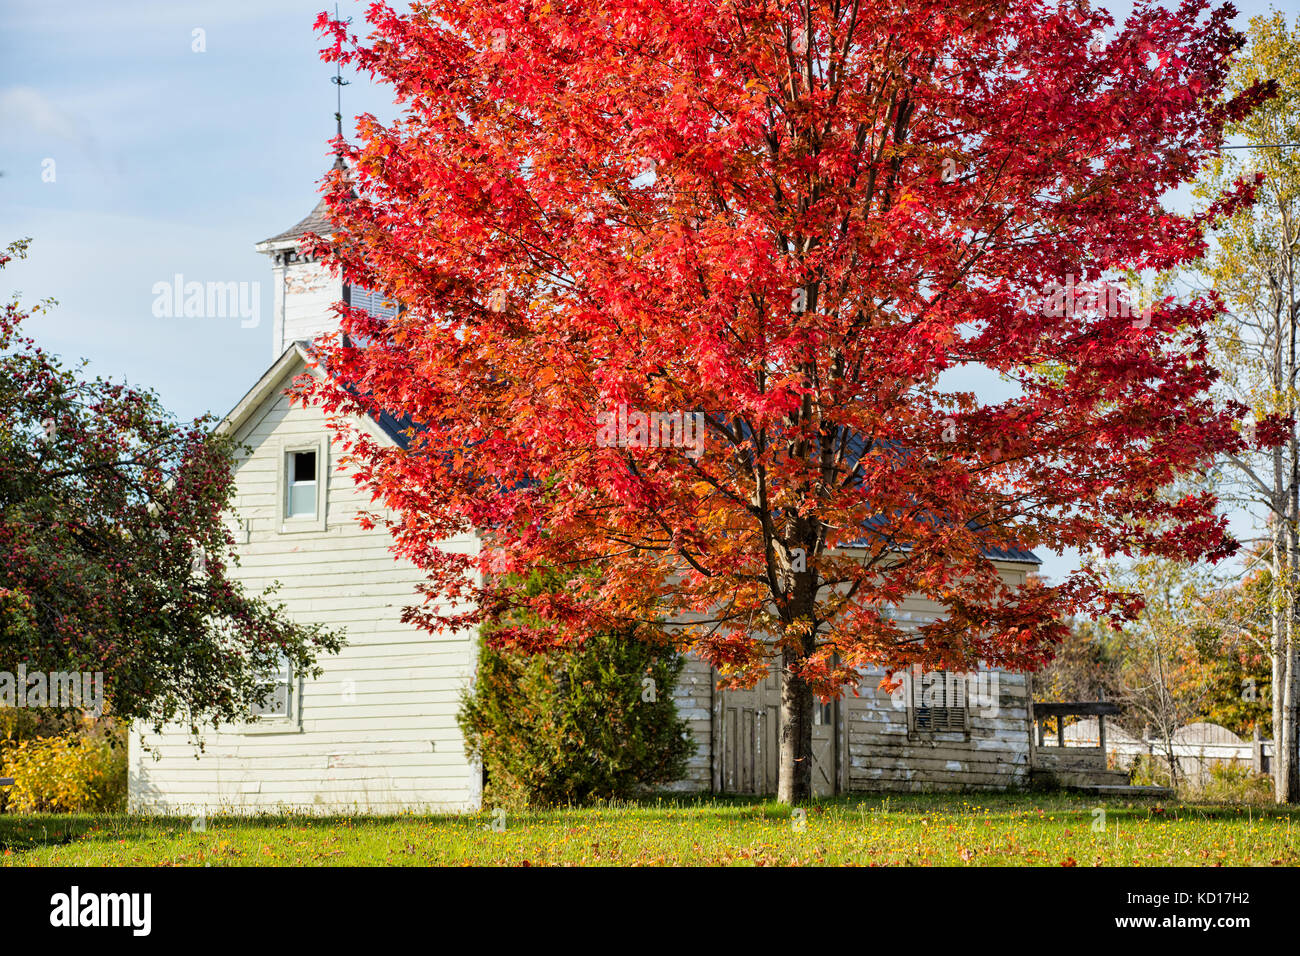 Maple tree and barn, St. Martins, Bay of Fundy, New Brunswick, Canada - Stock Image